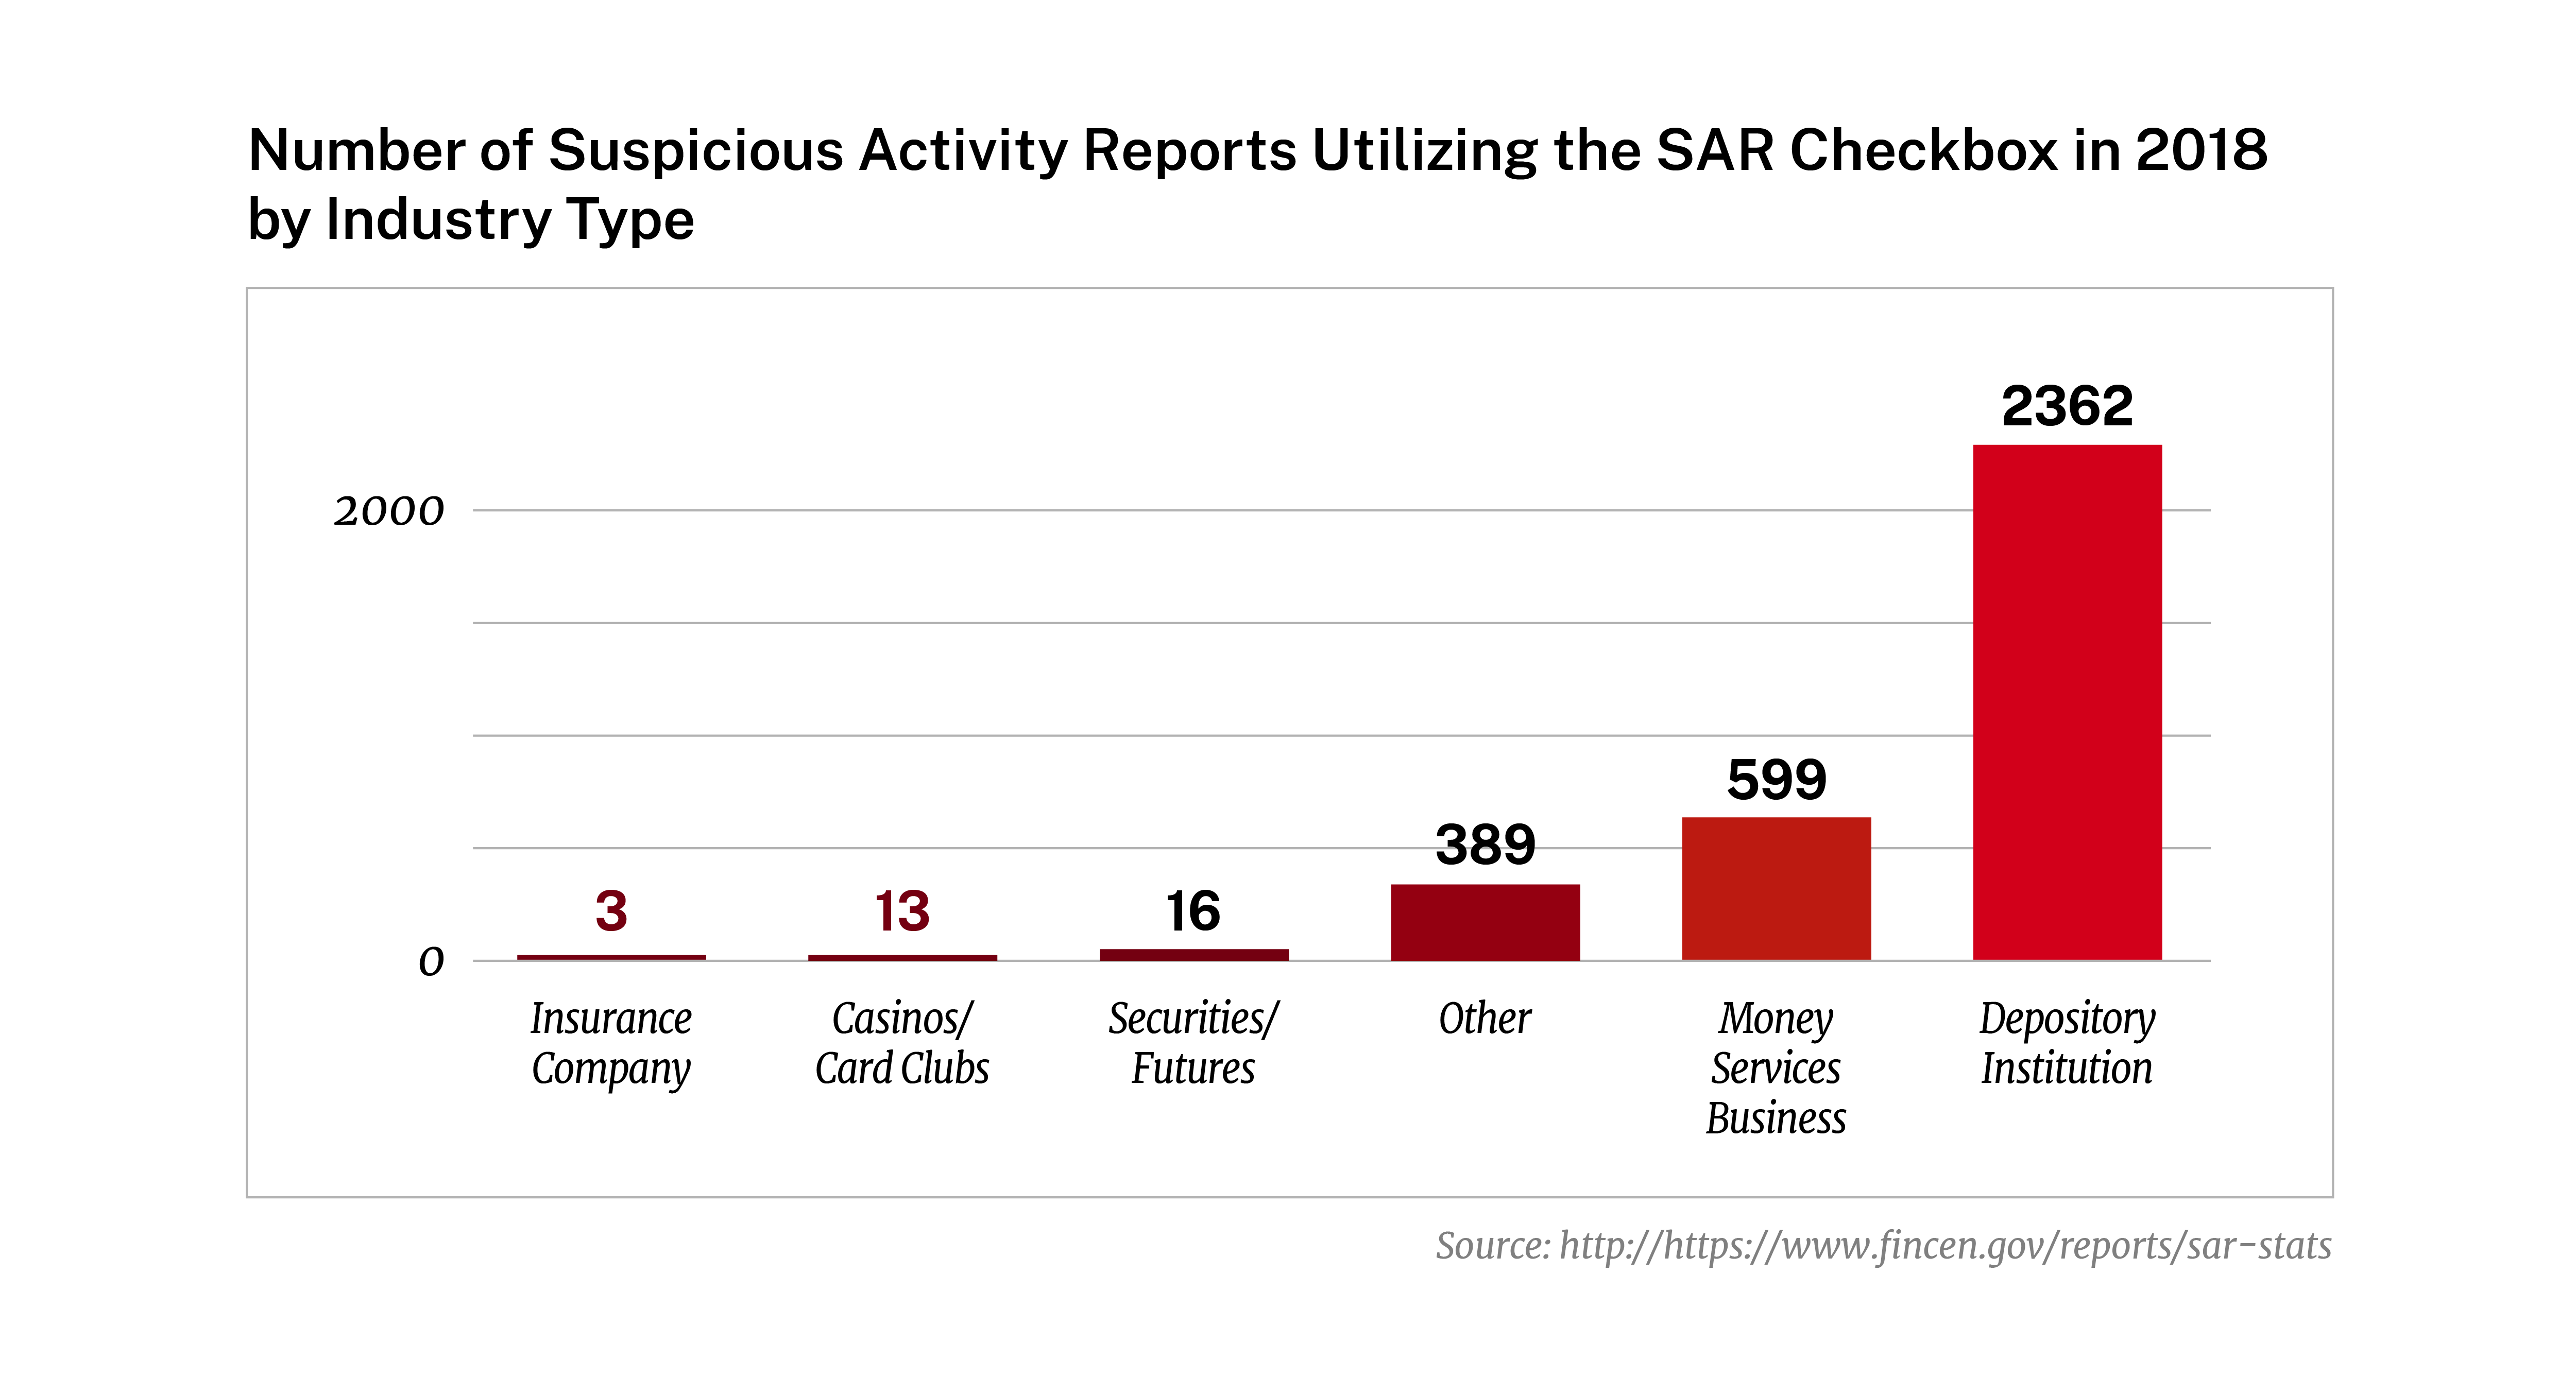 Number of Suspicious Activity Reports Utilizing the SAR Checkbox in 2018 by Industry Type